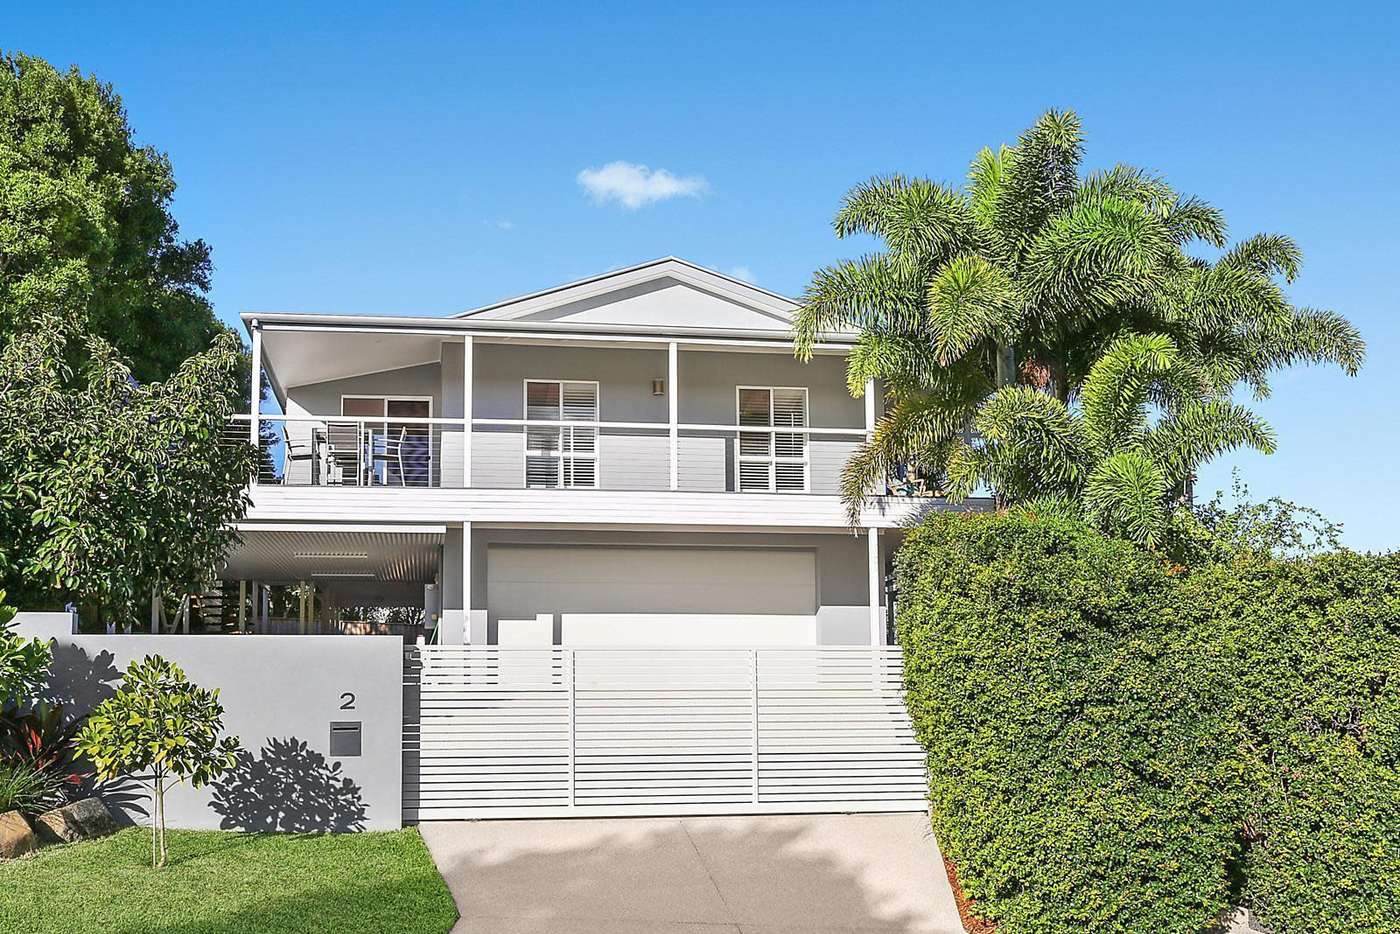 Main view of Homely house listing, 2 Banjora Place, Noosa Heads QLD 4567